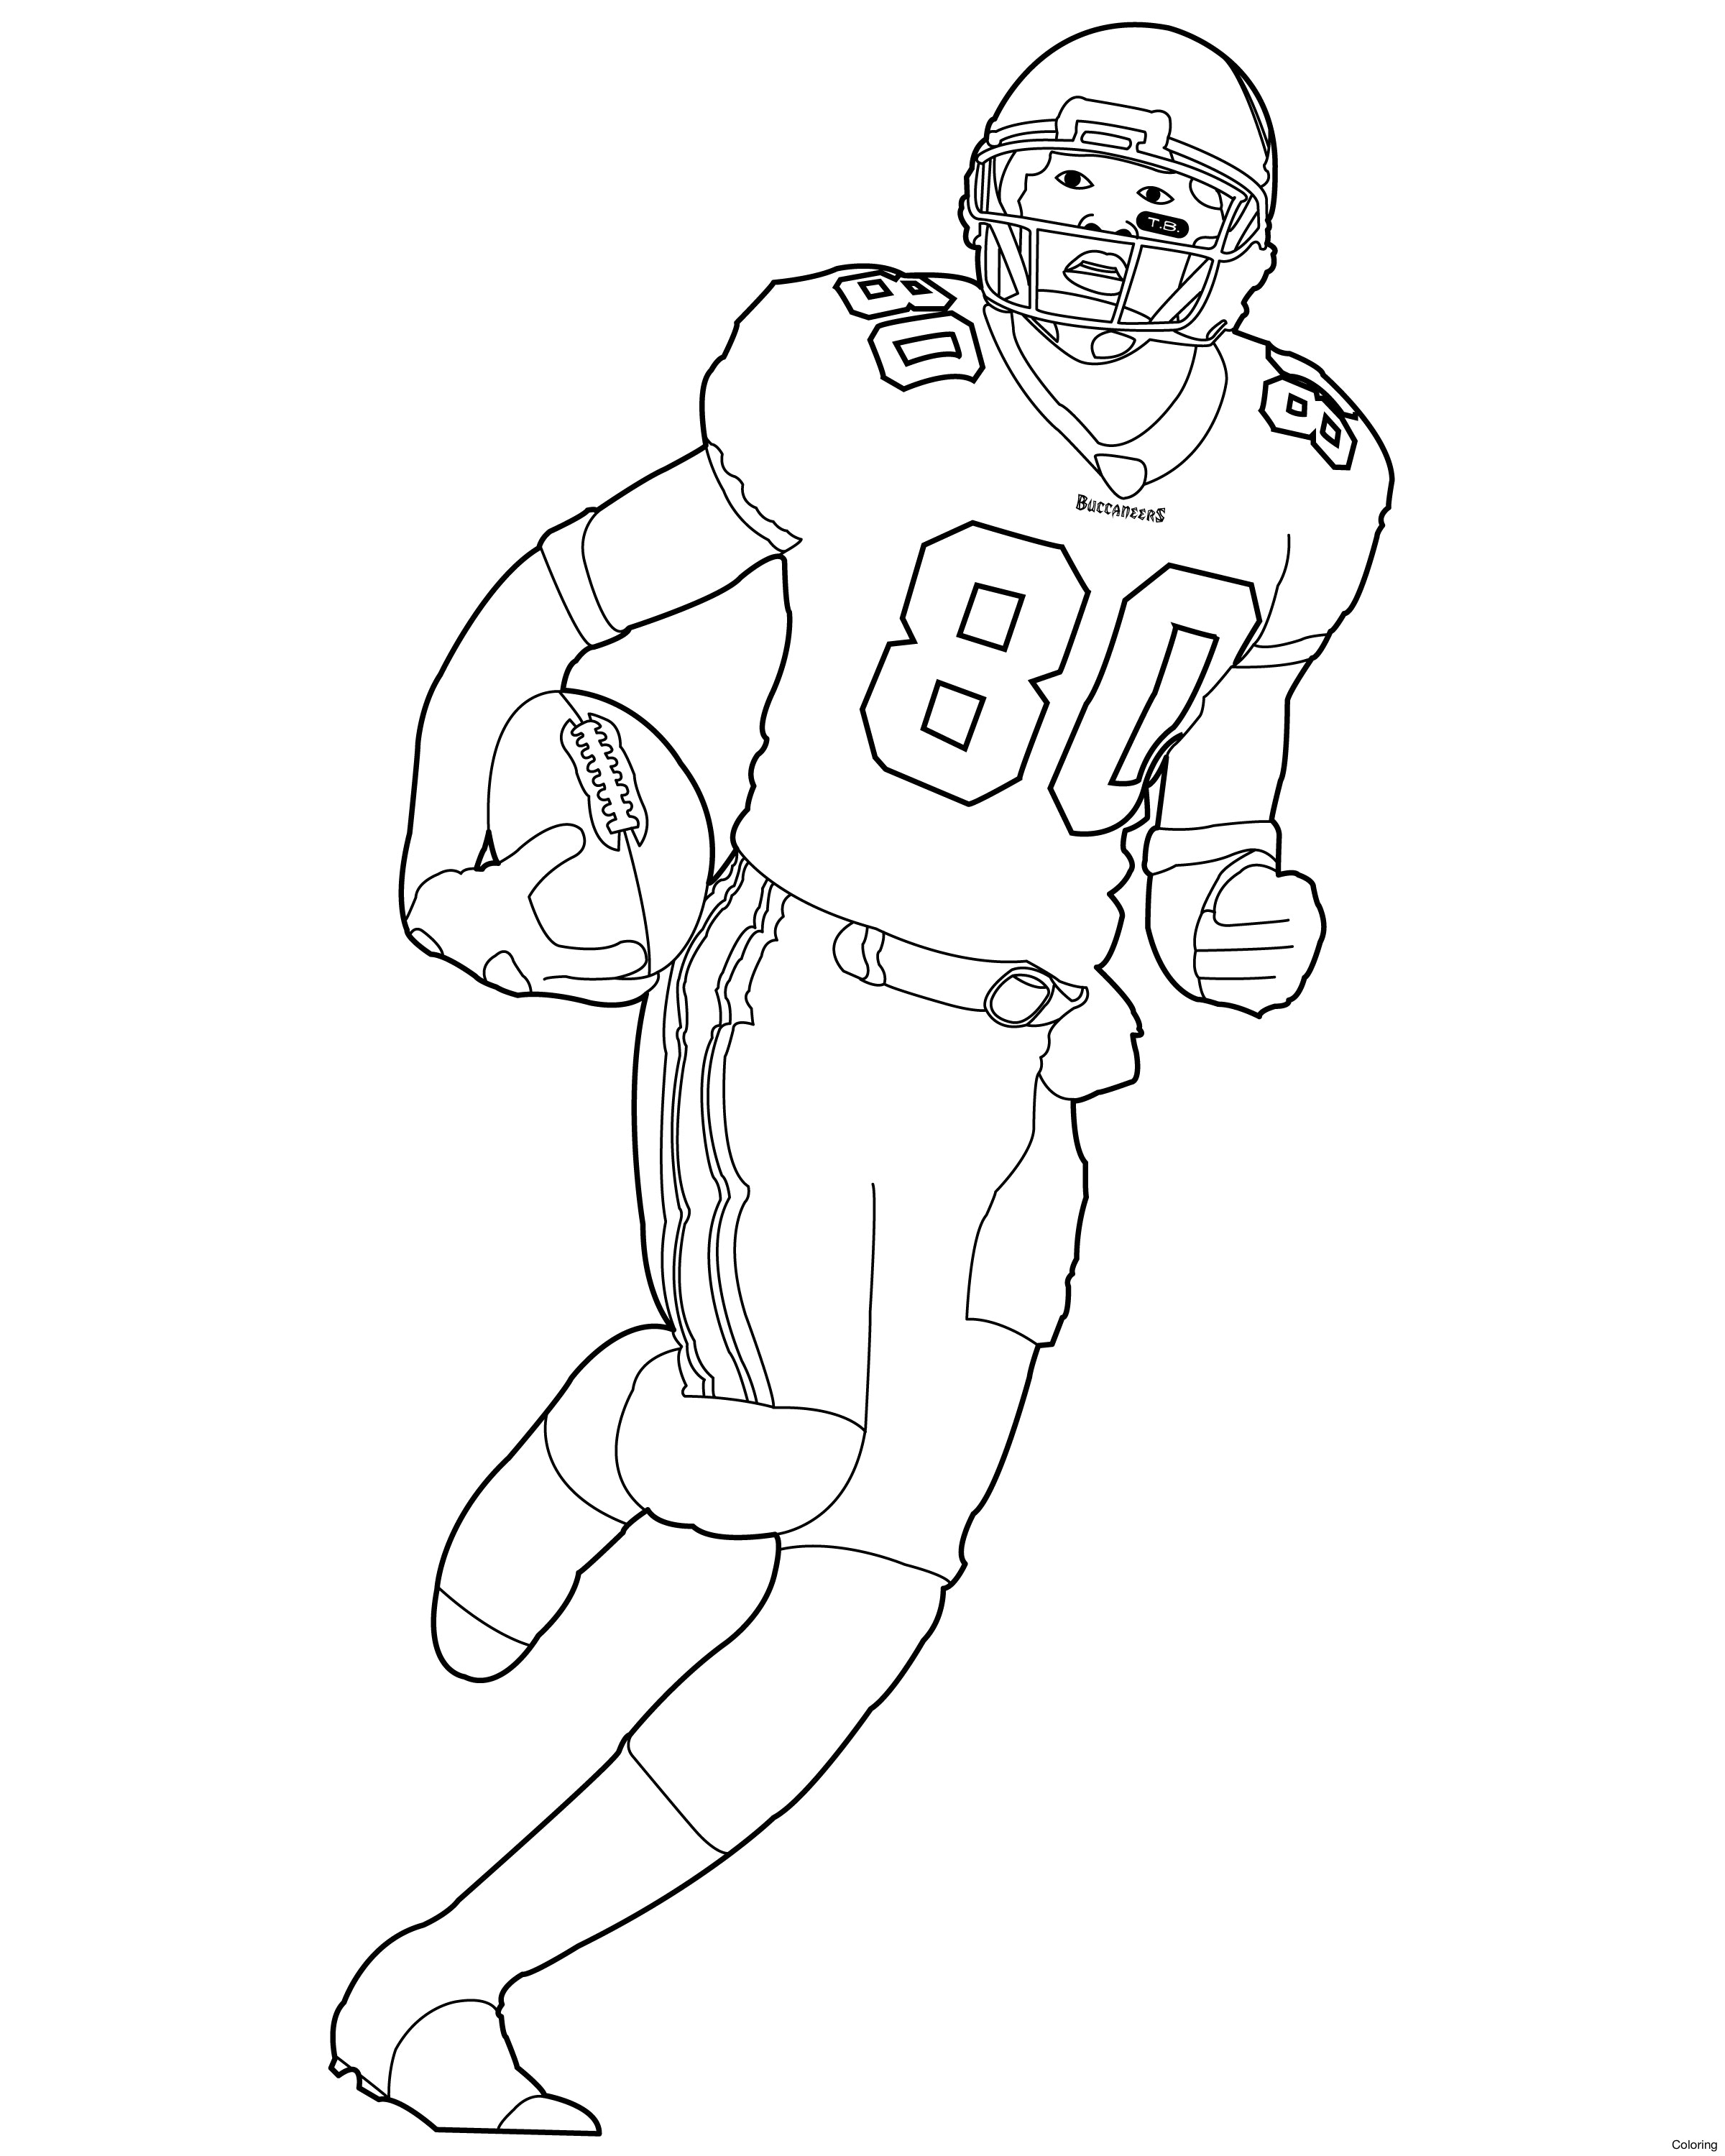 draw a football player football player drawing reference and sketches for artists a draw player football